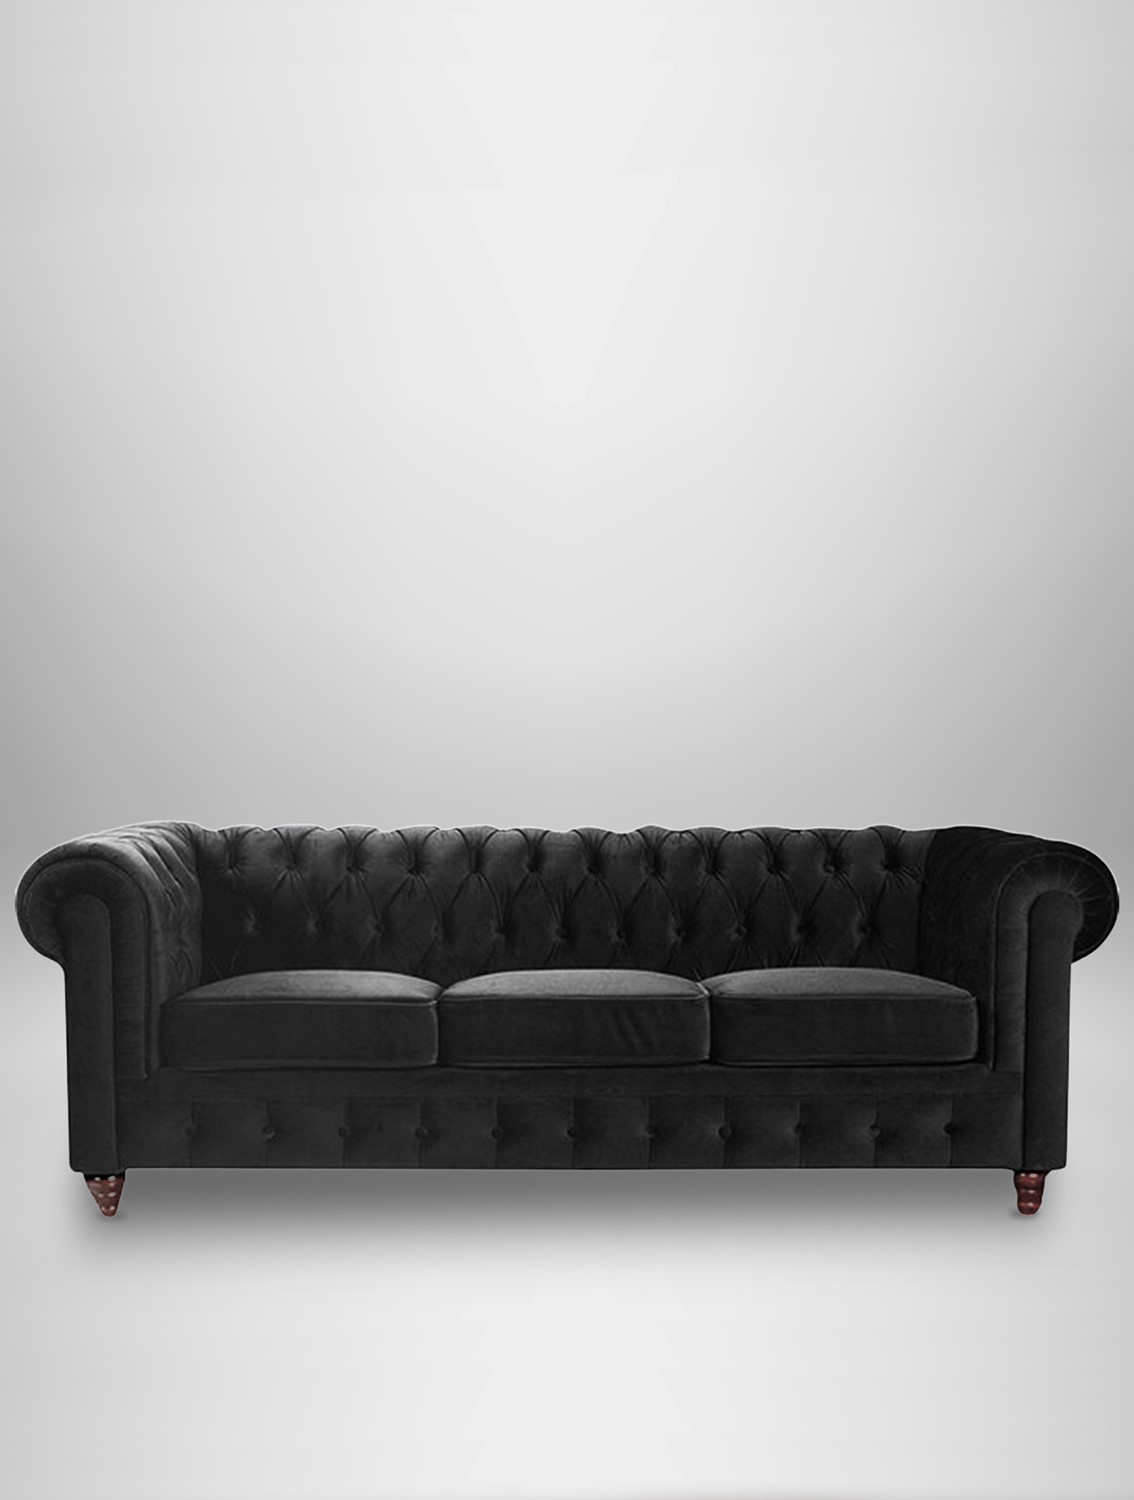 Chesterfield Sofas Lincoln Black Velvet Chesterfield Sofa Black Chesterfield Sofas